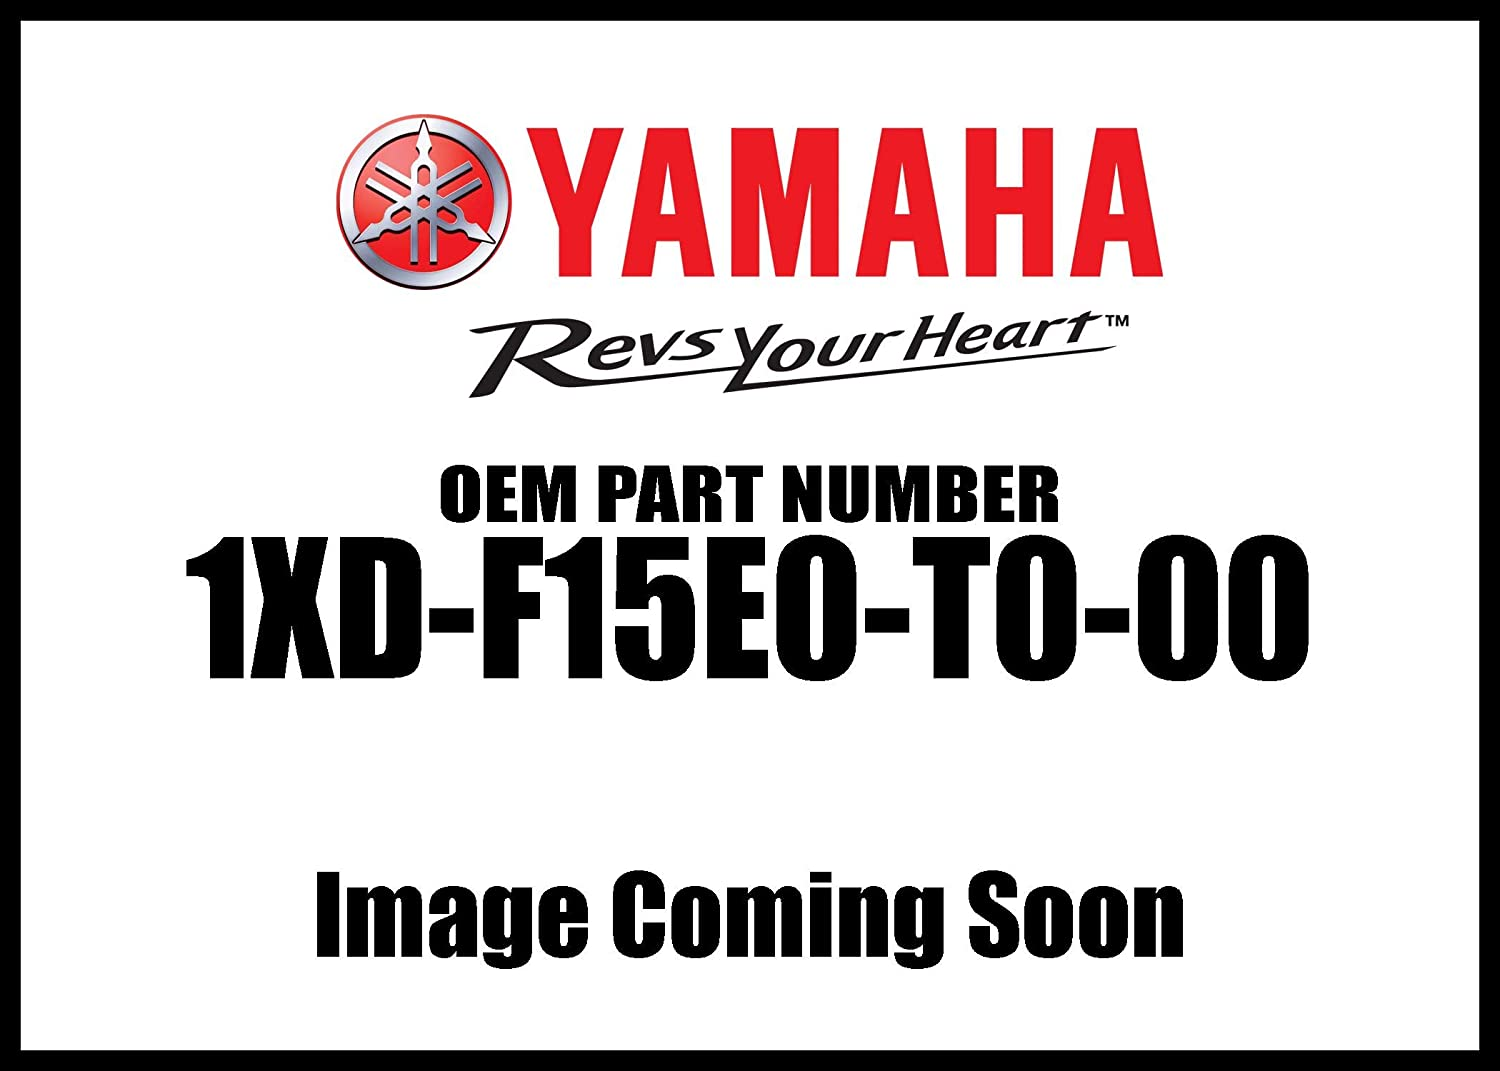 *NEW* YAMAHA VIKING OVER FENDERS 1XD-F15E0-V0-00